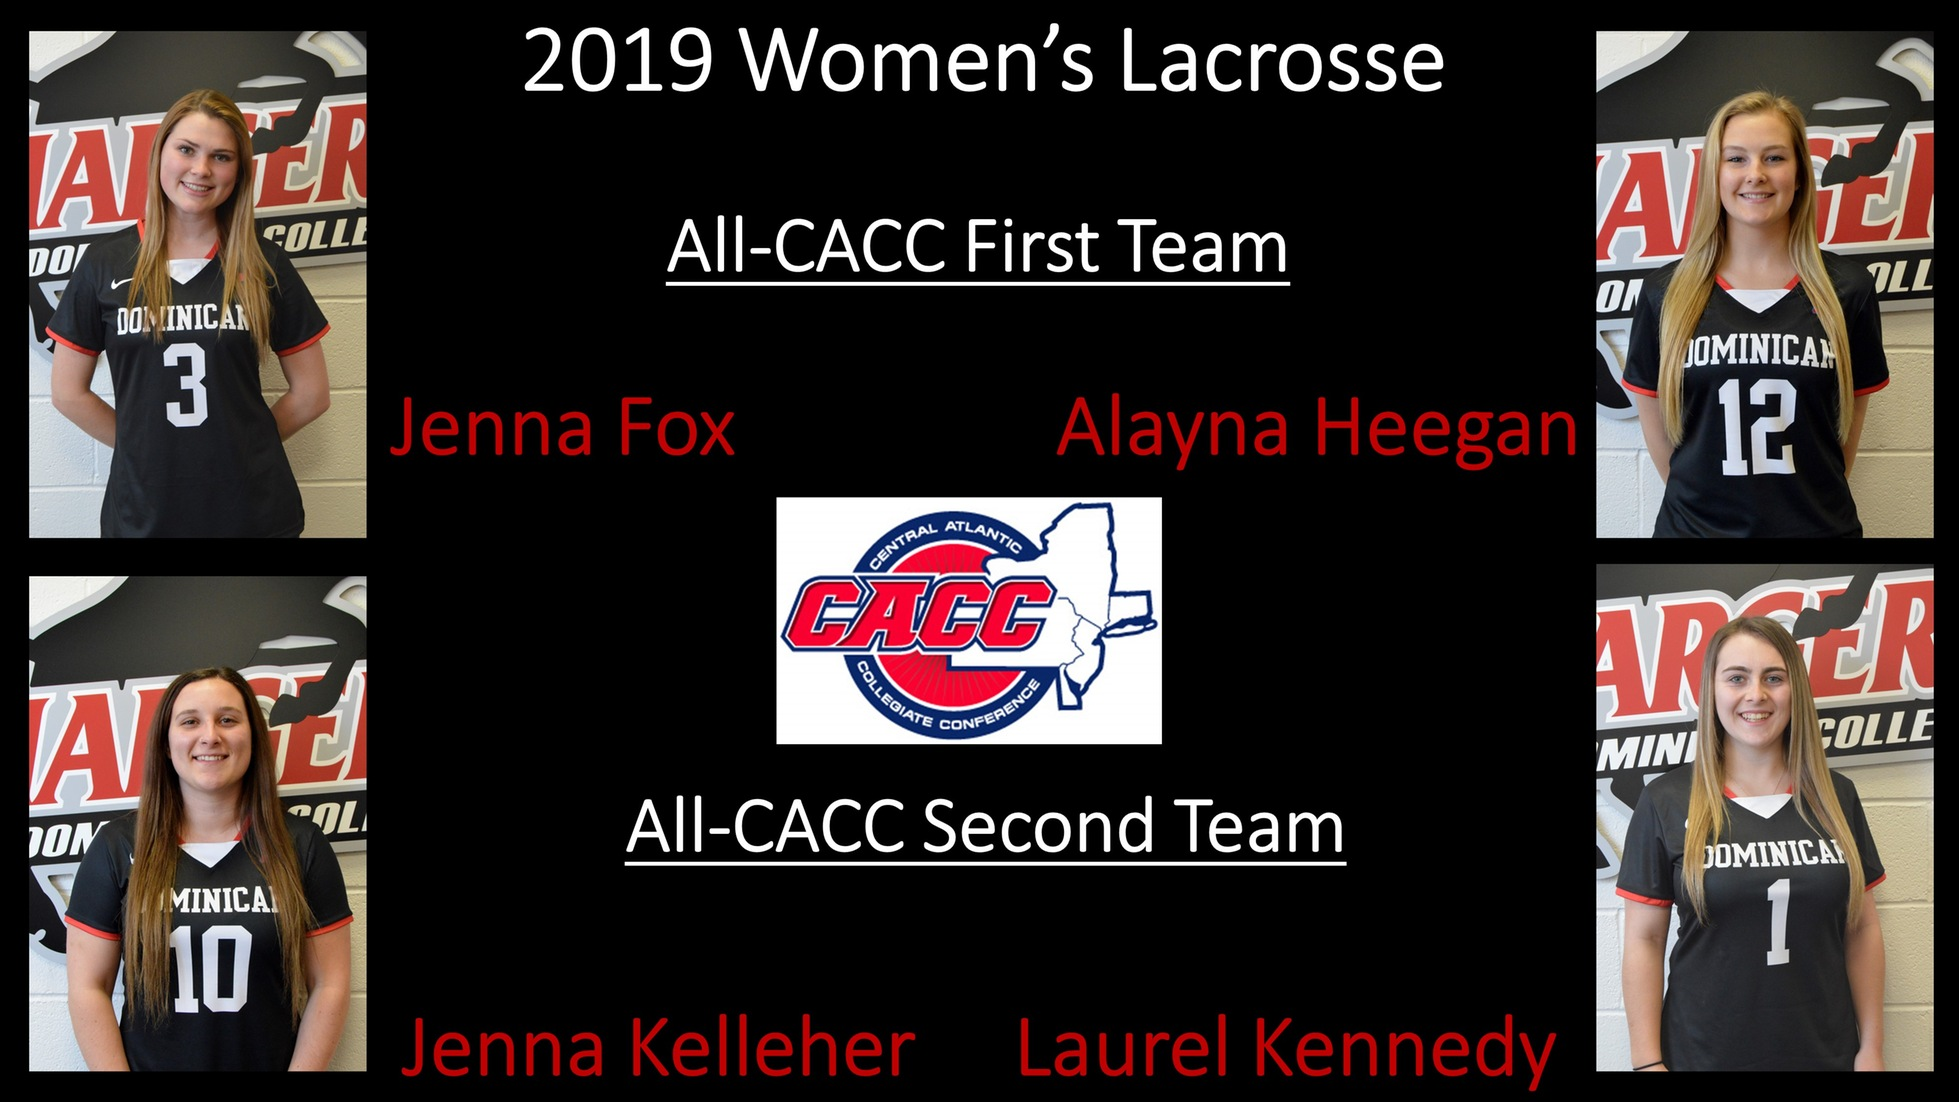 FOUR LADY CHARGERS EARN ALL-CACC WOMEN'S LACROSSE HONORS